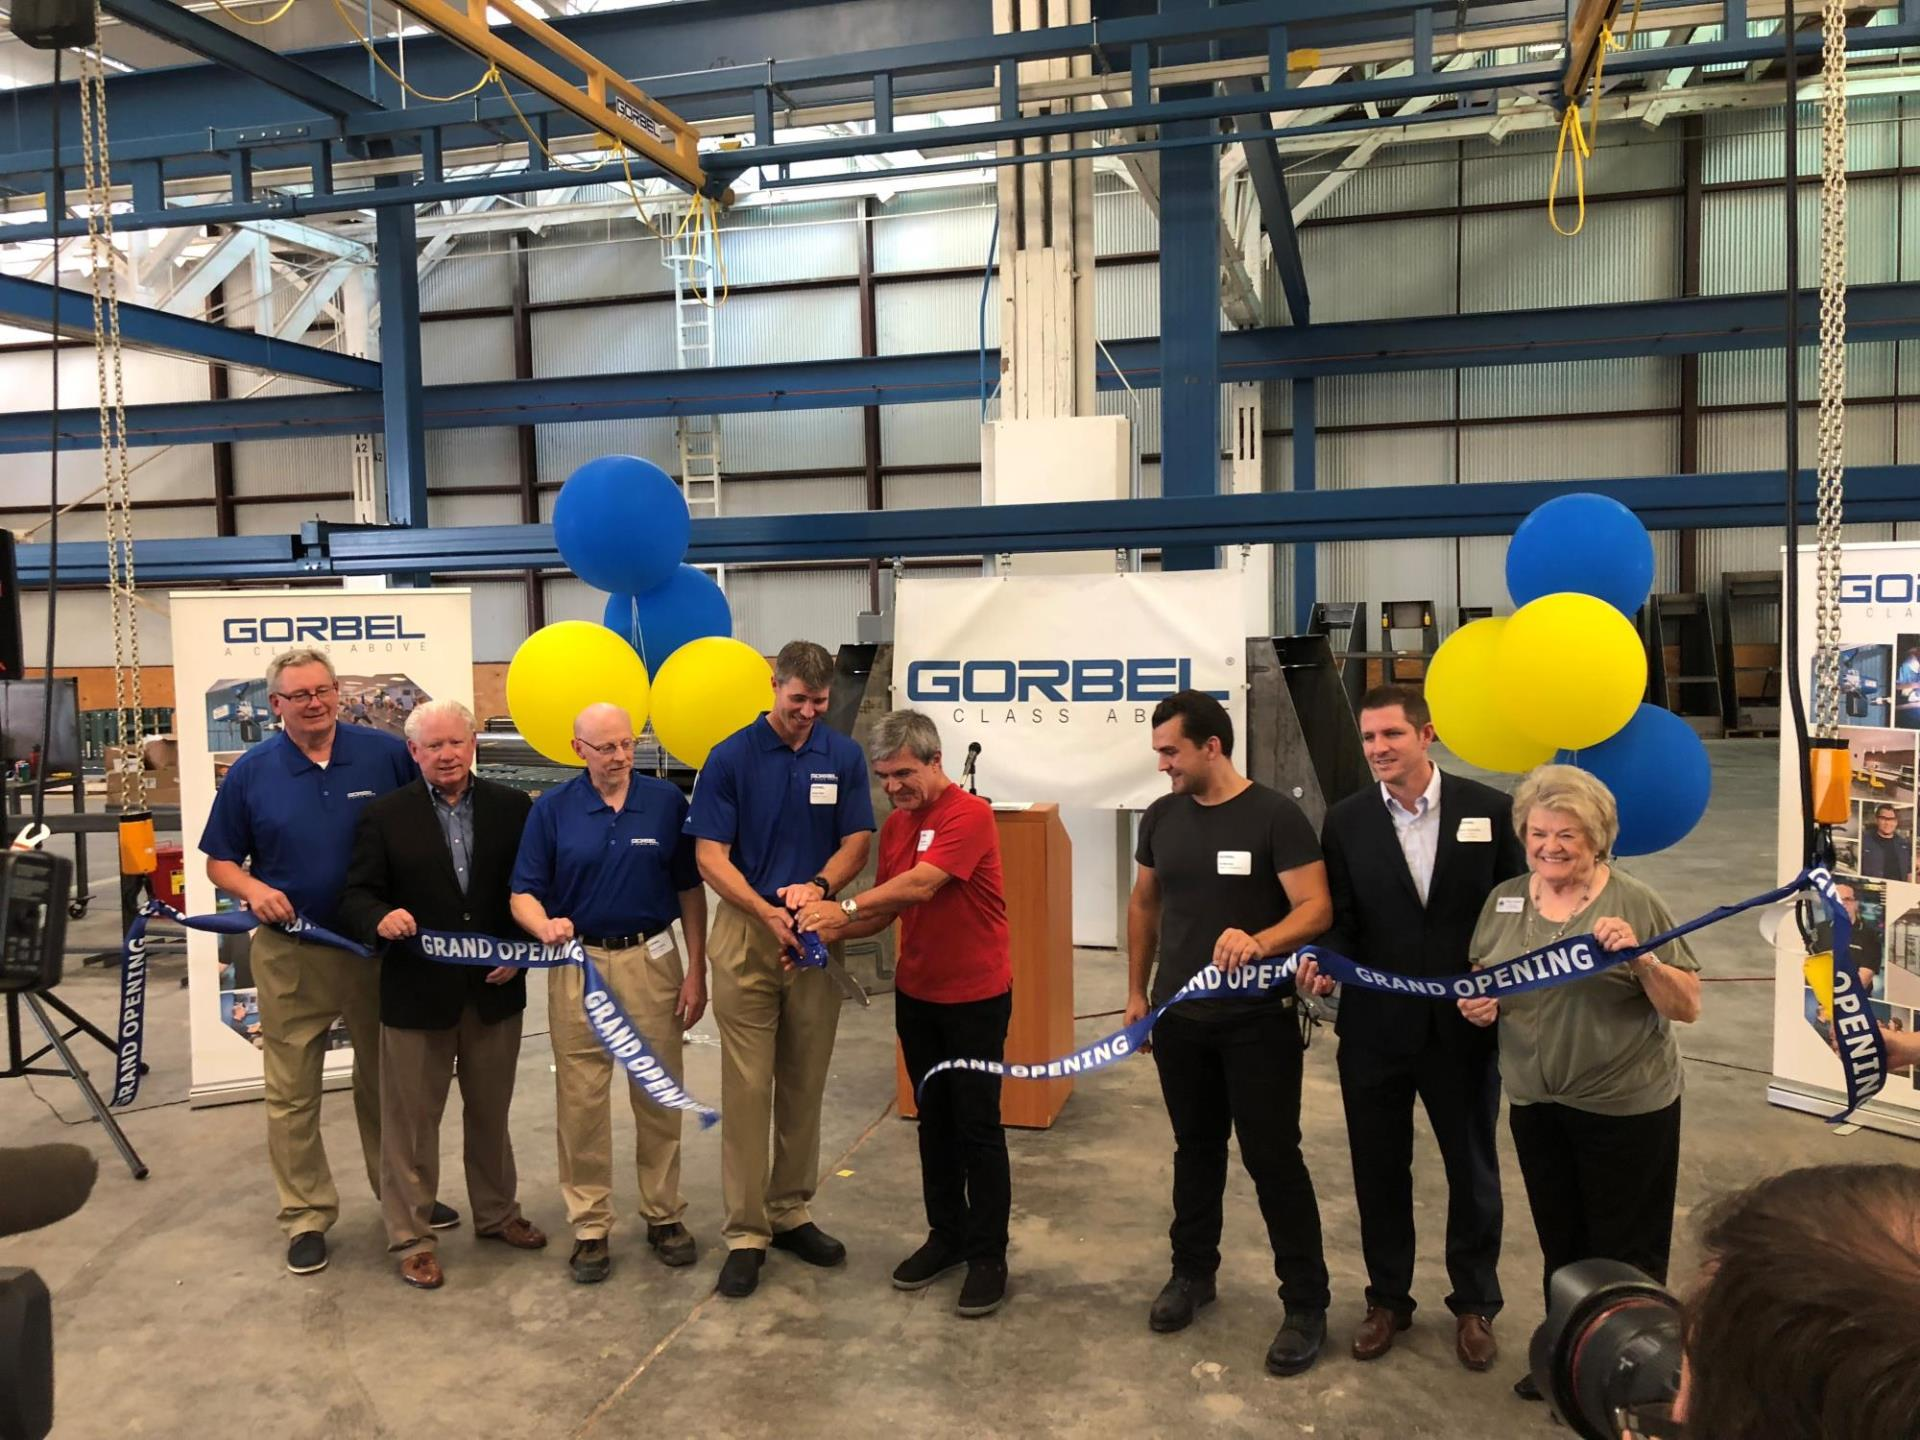 Gorbel Ribbon Cutting, July 2018